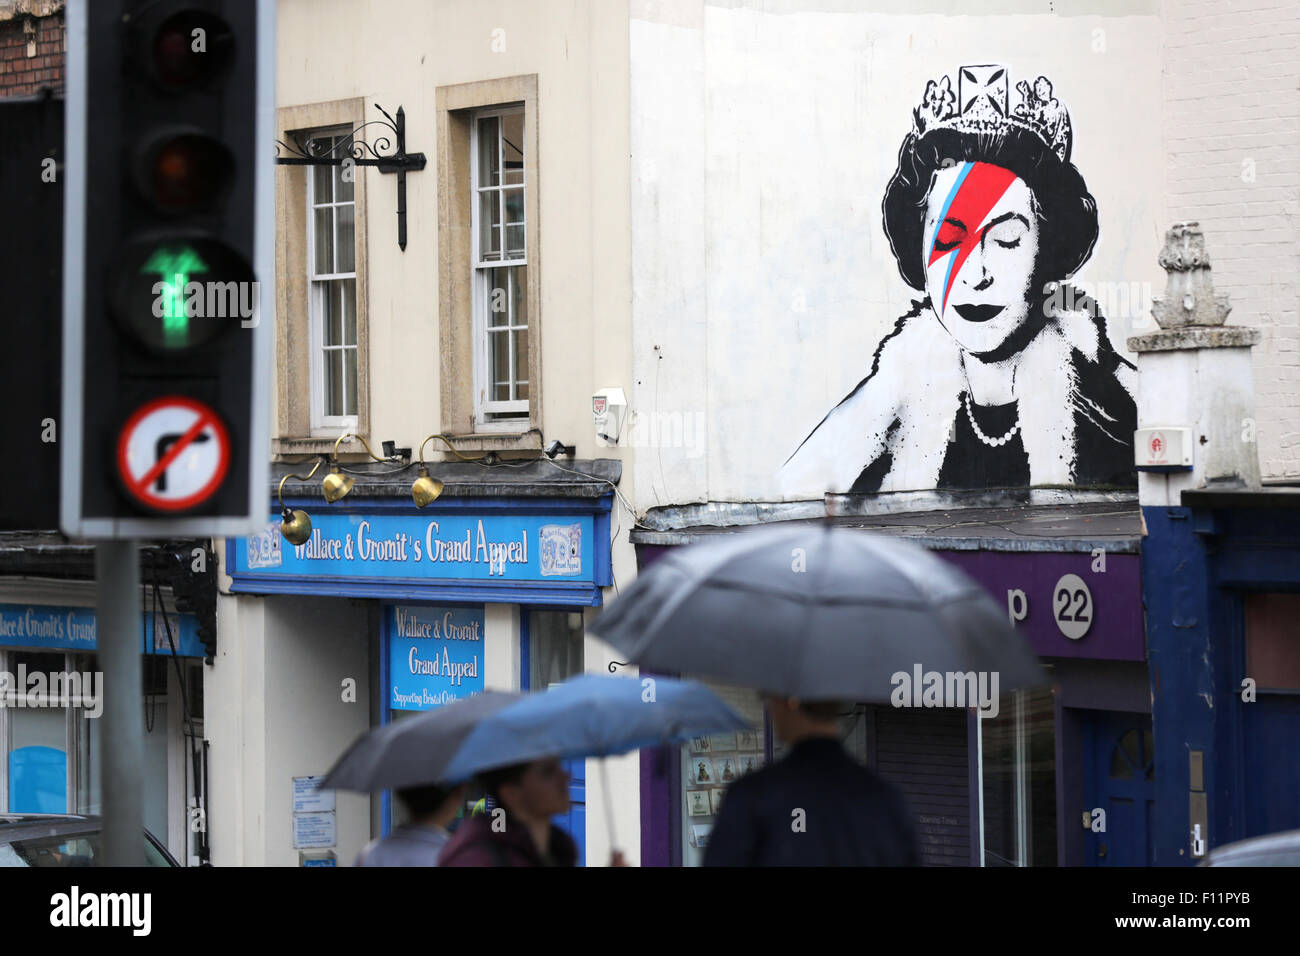 a-banksy-artwork-a-painting-of-queen-eli